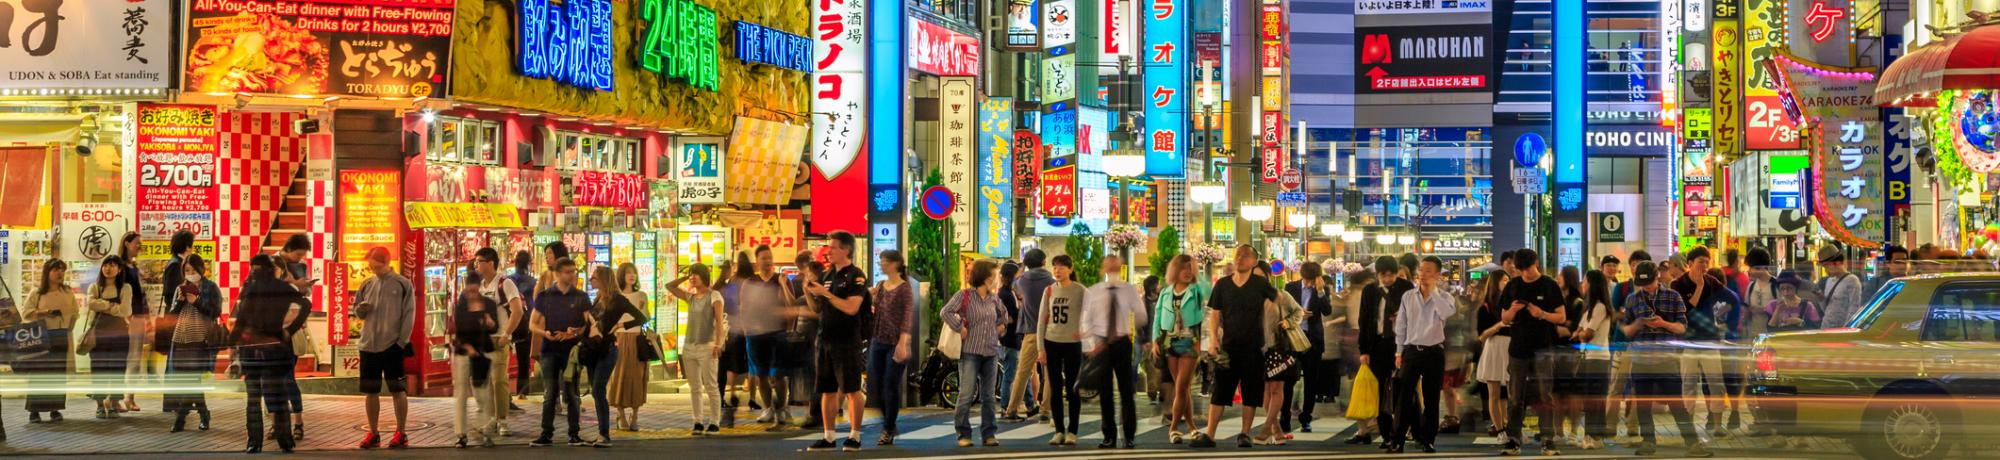 UC Davis Study Abroad, Summer Internship Abroad Japan, Business and Communication Program, Header Image